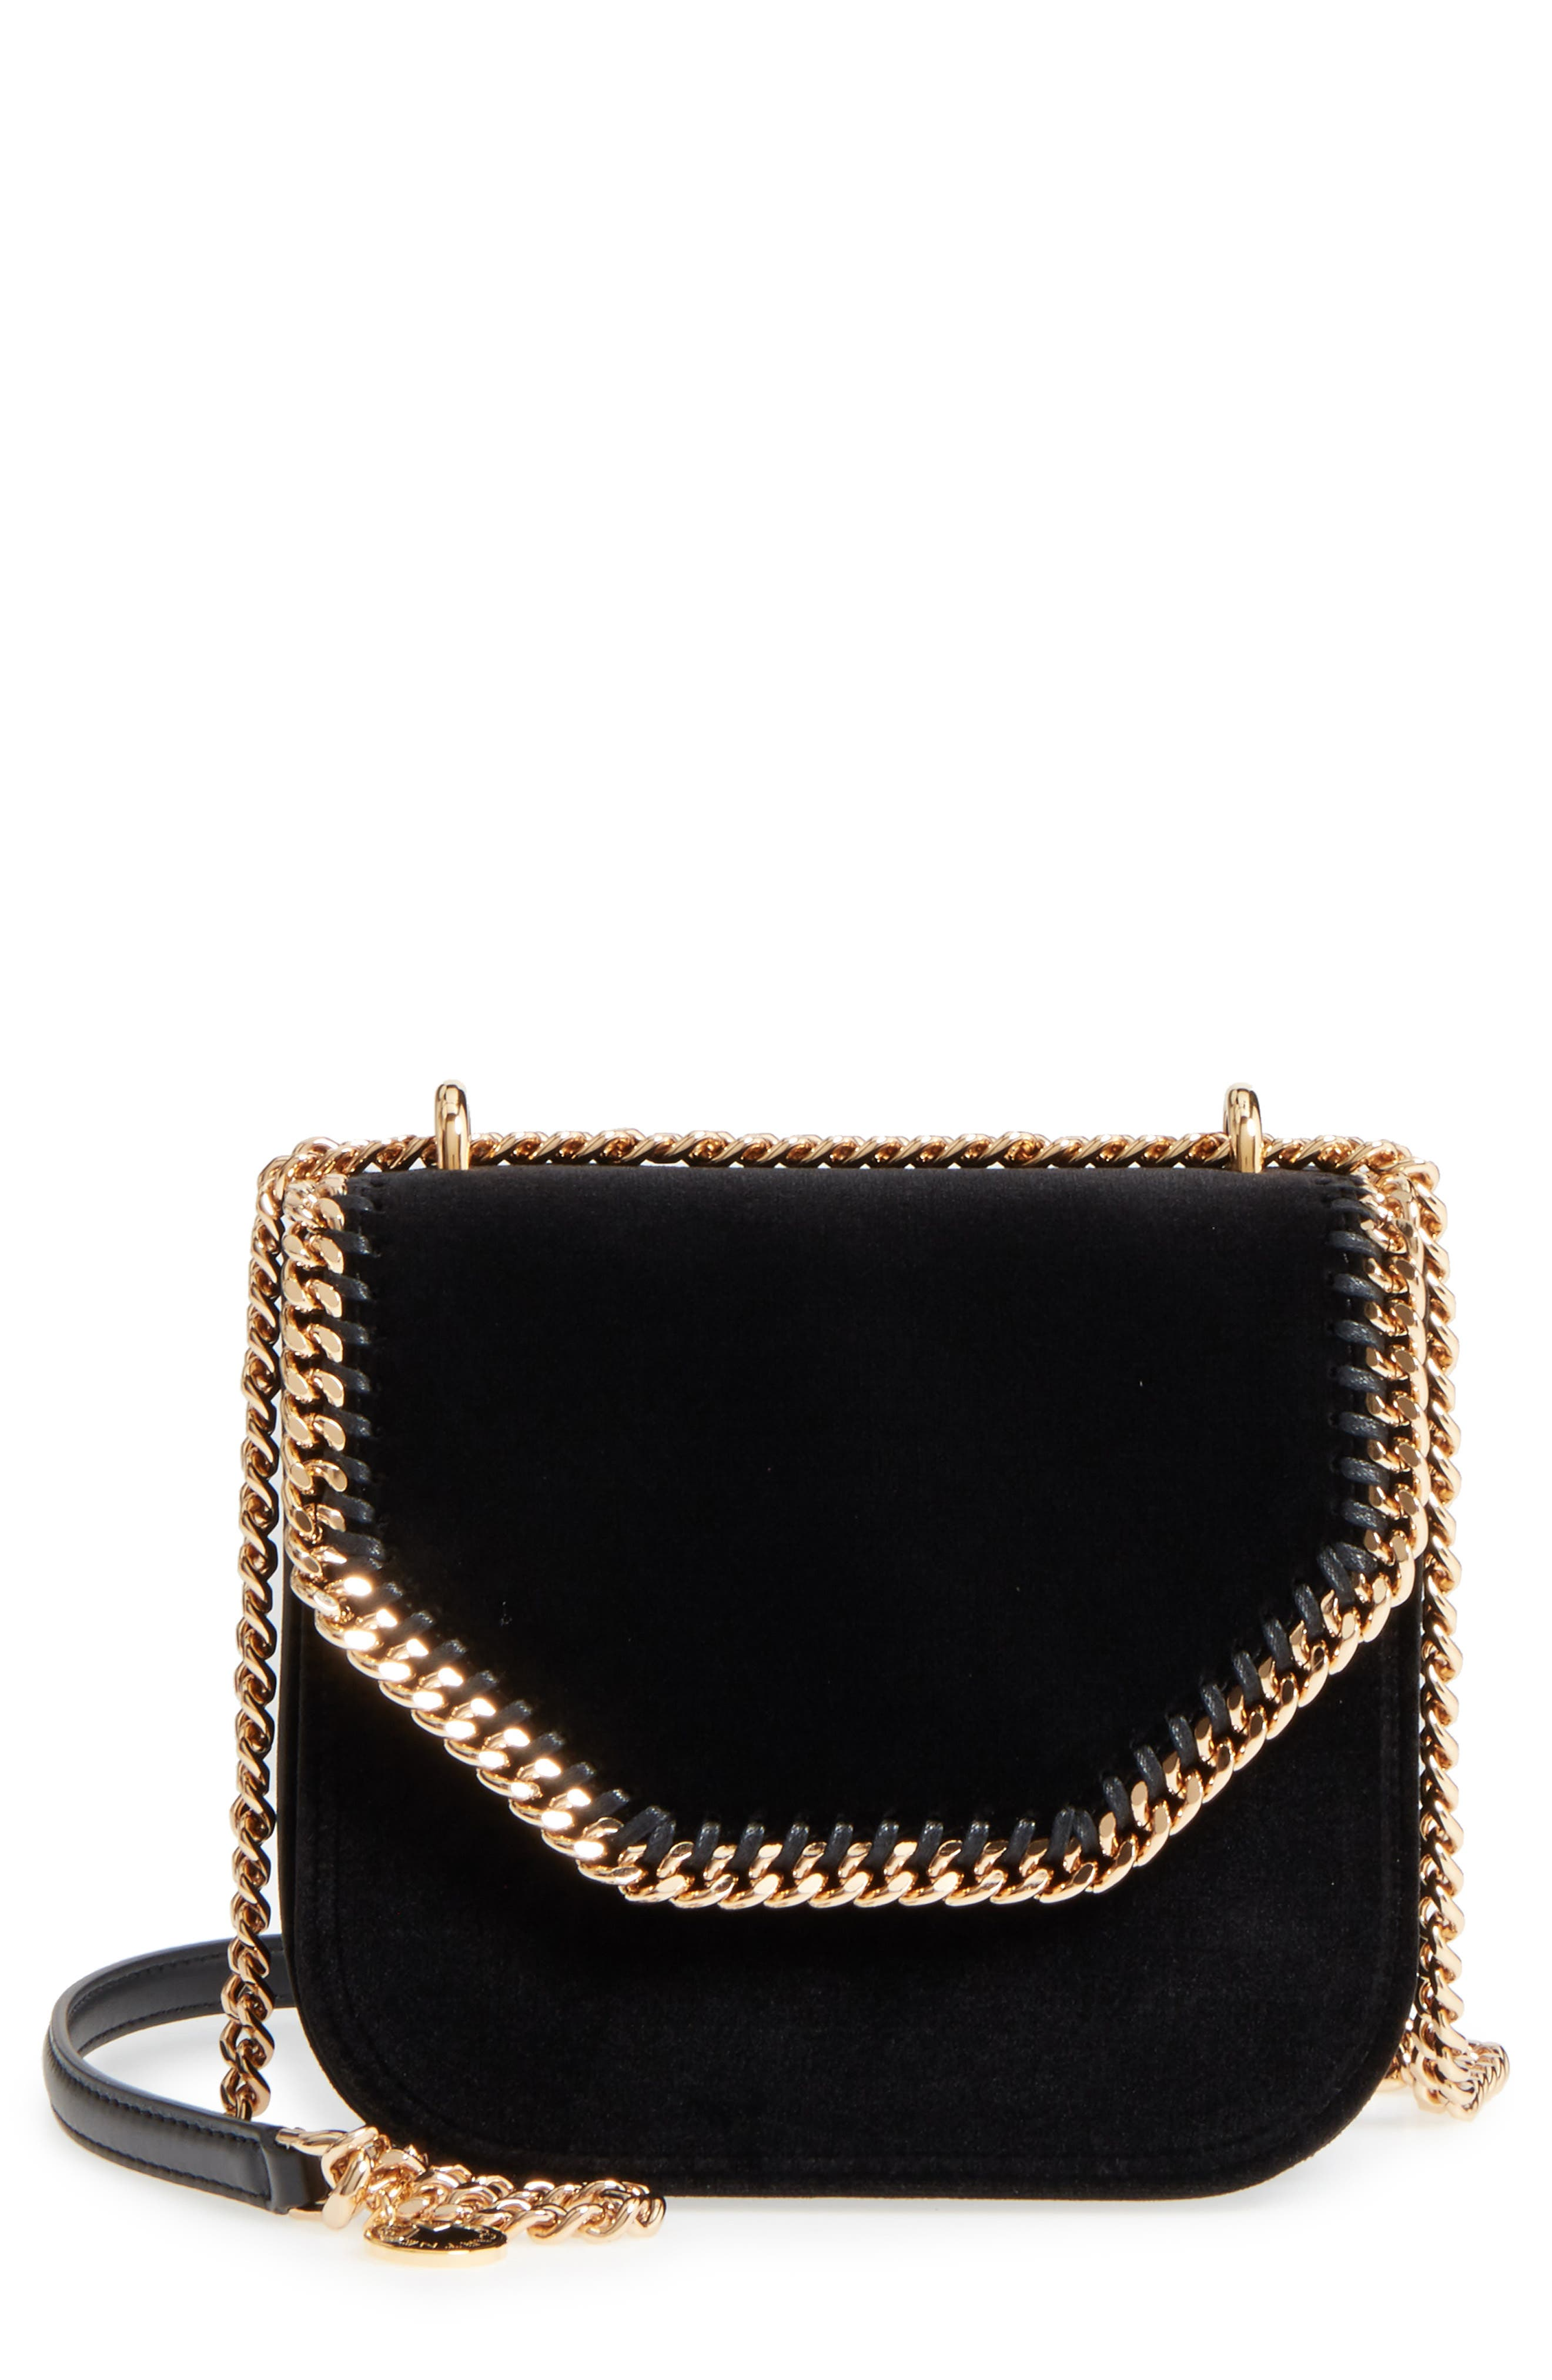 Alternate Image 1 Selected - Stella McCartney Mini Falabella Box Velvet Shoulder Bag